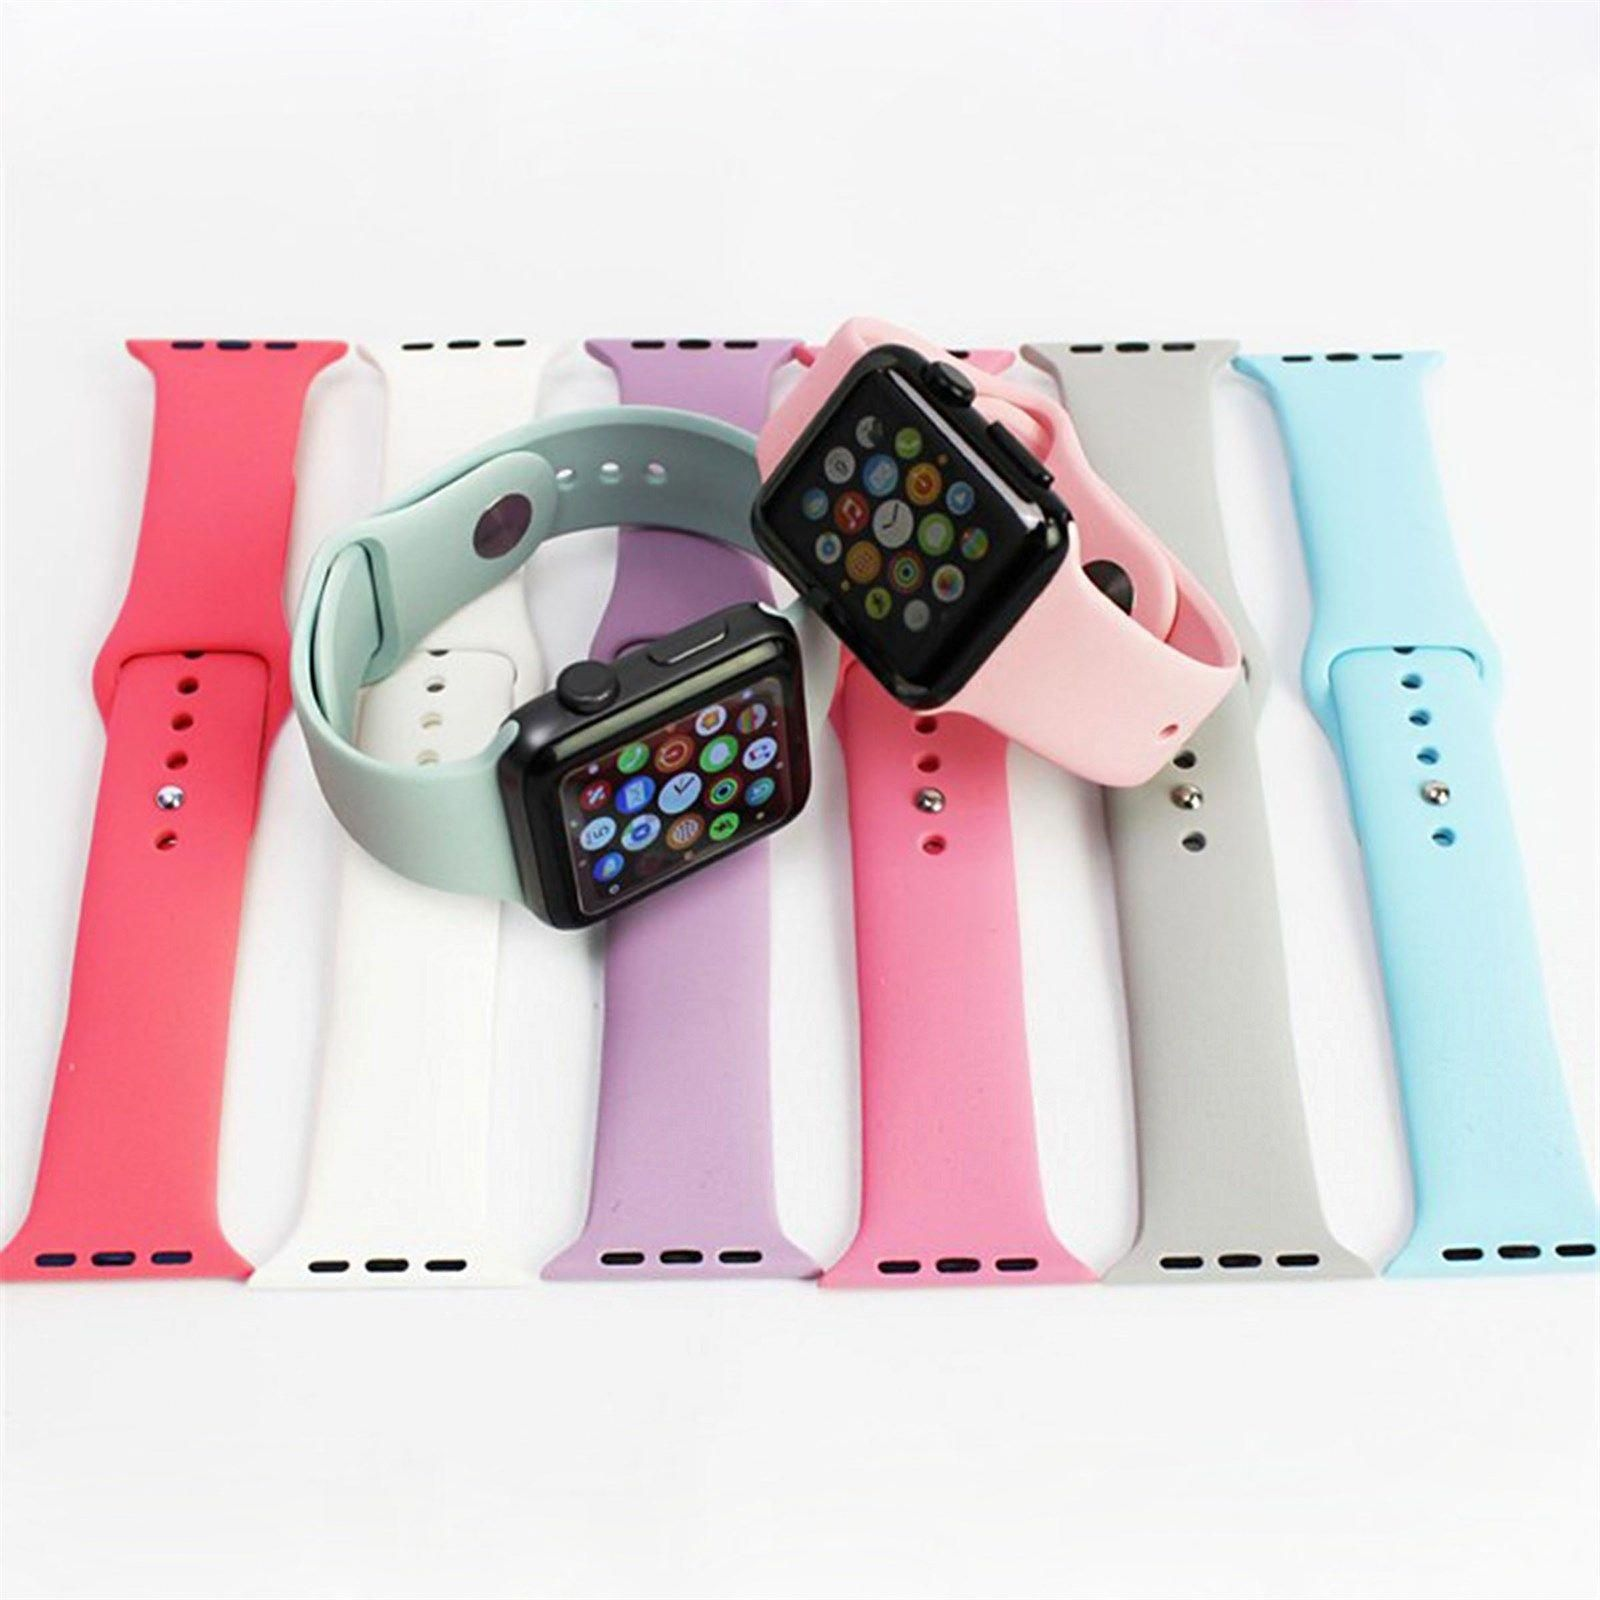 Our Apple Watch Bands are trending and very popular! They